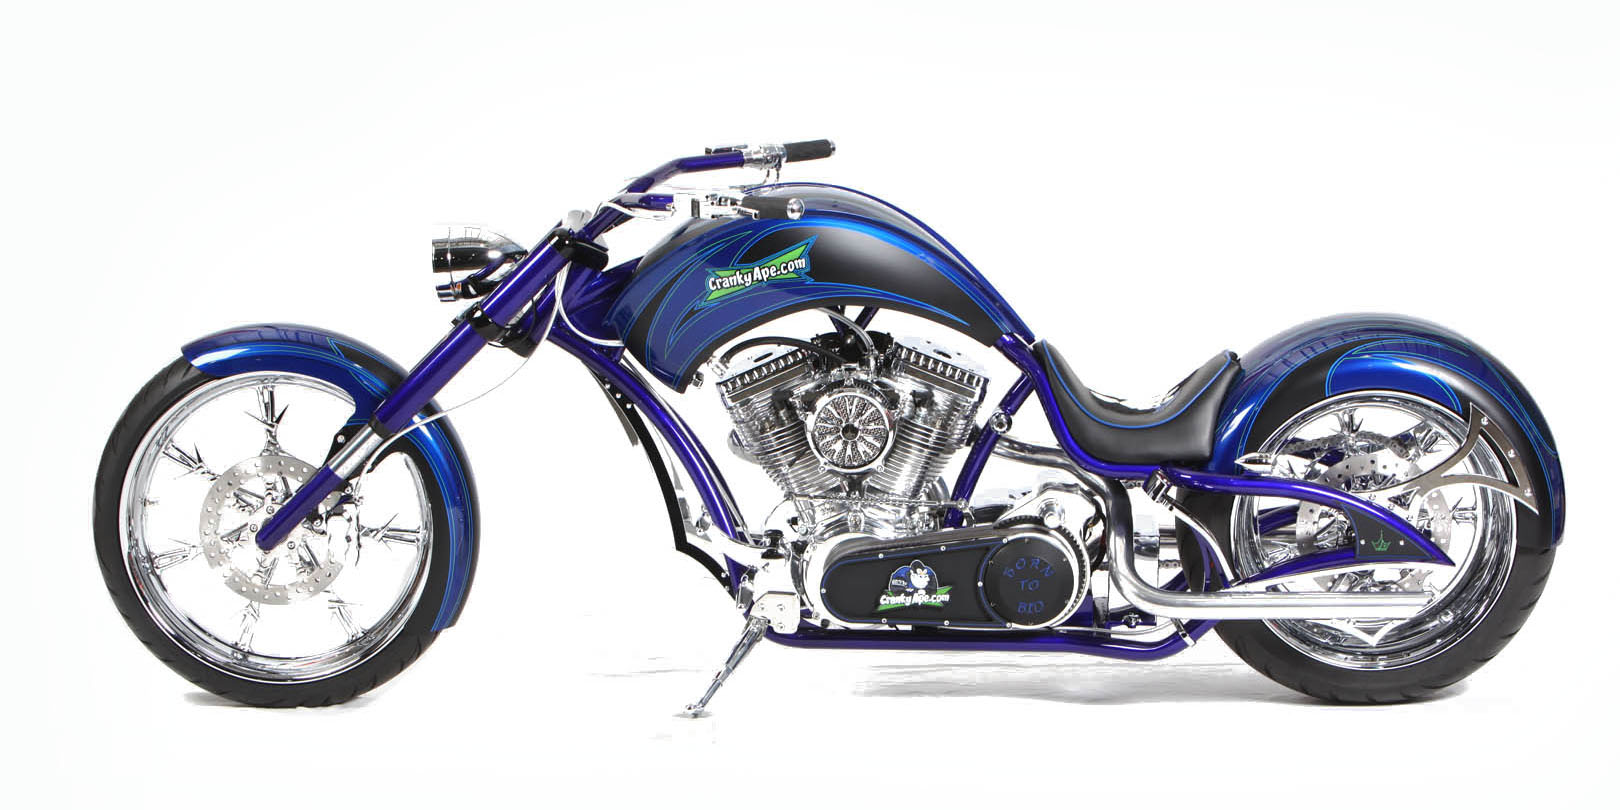 paul-jr-designs-crankyape-bike-122